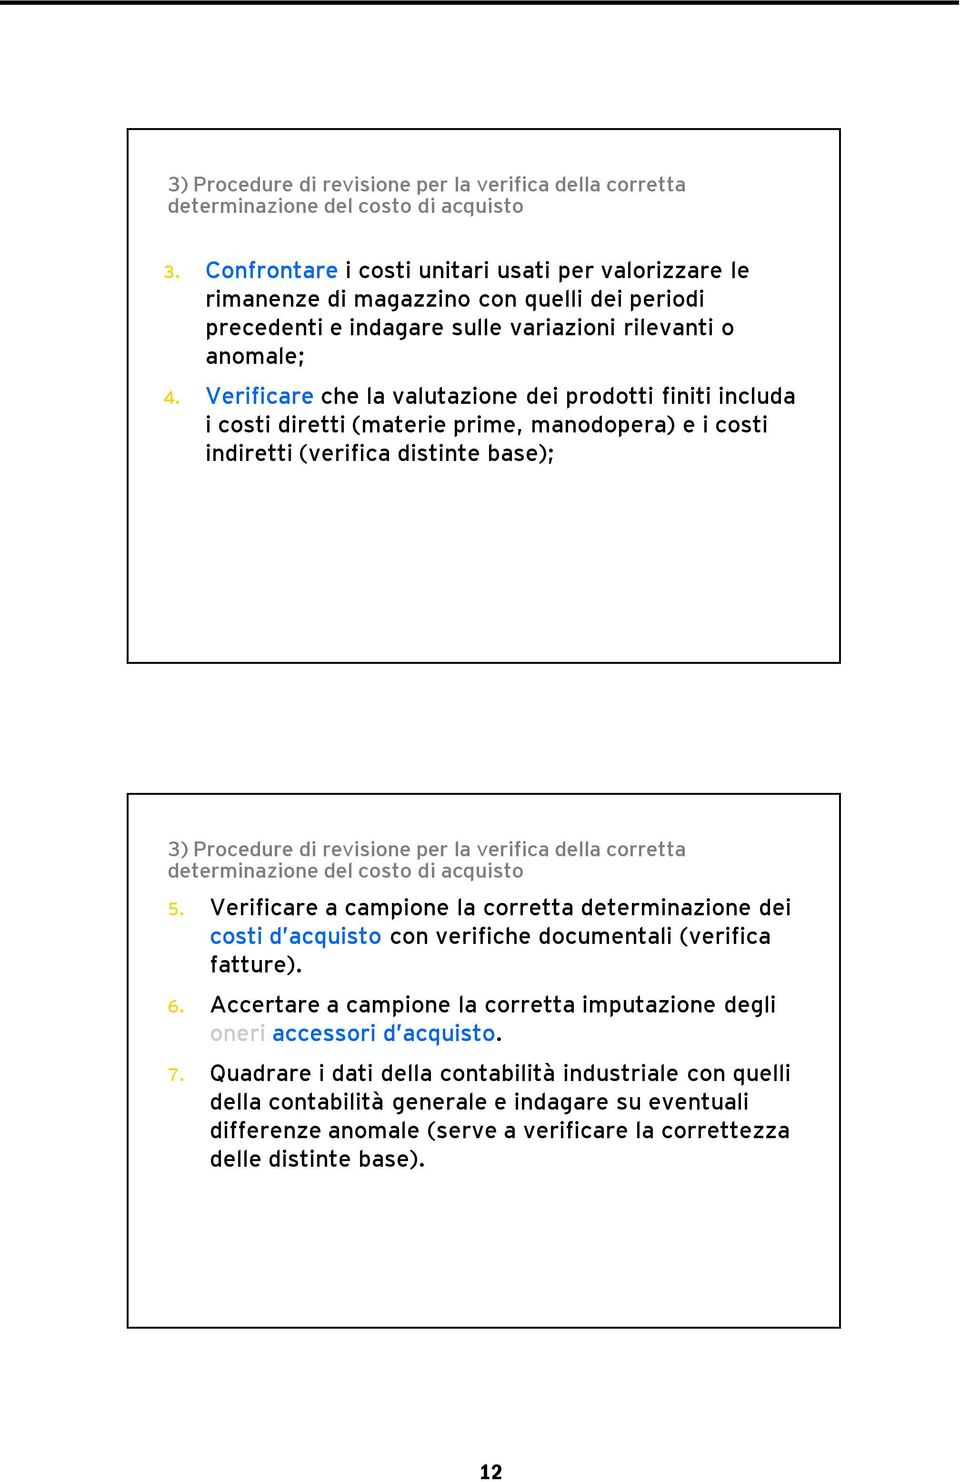 Verificare che la valutazione dei prodotti finiti includa i costi diretti (materie prime, manodopera) e i costi indiretti (verifica distinte base); 3) Procedure di revisione per la verifica della